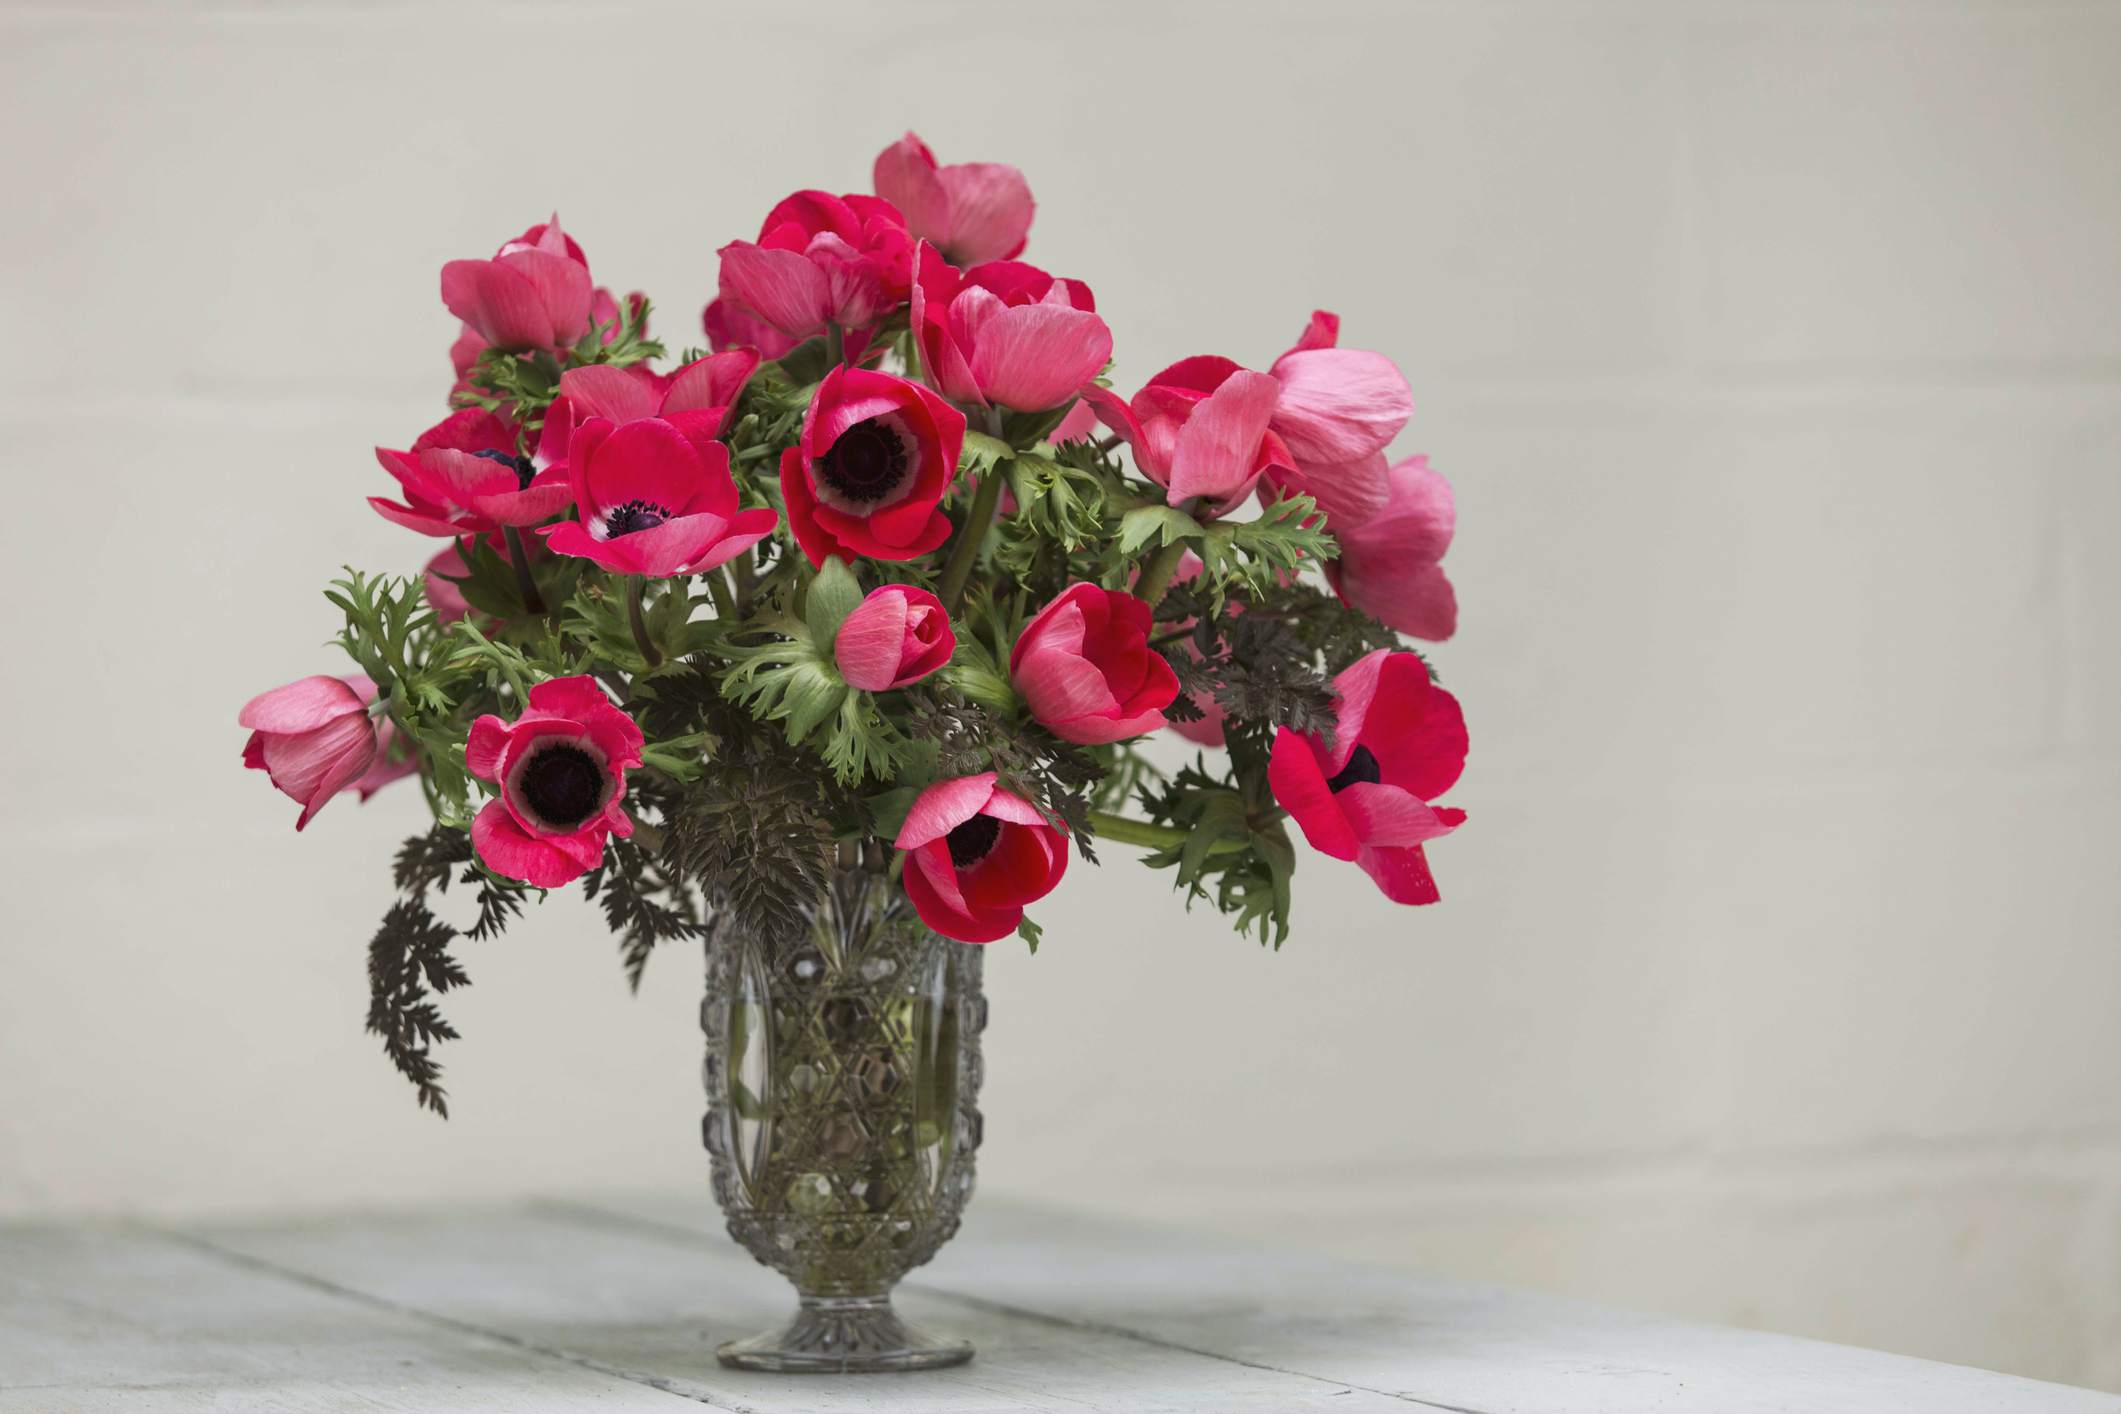 Anemone flowers in a vase